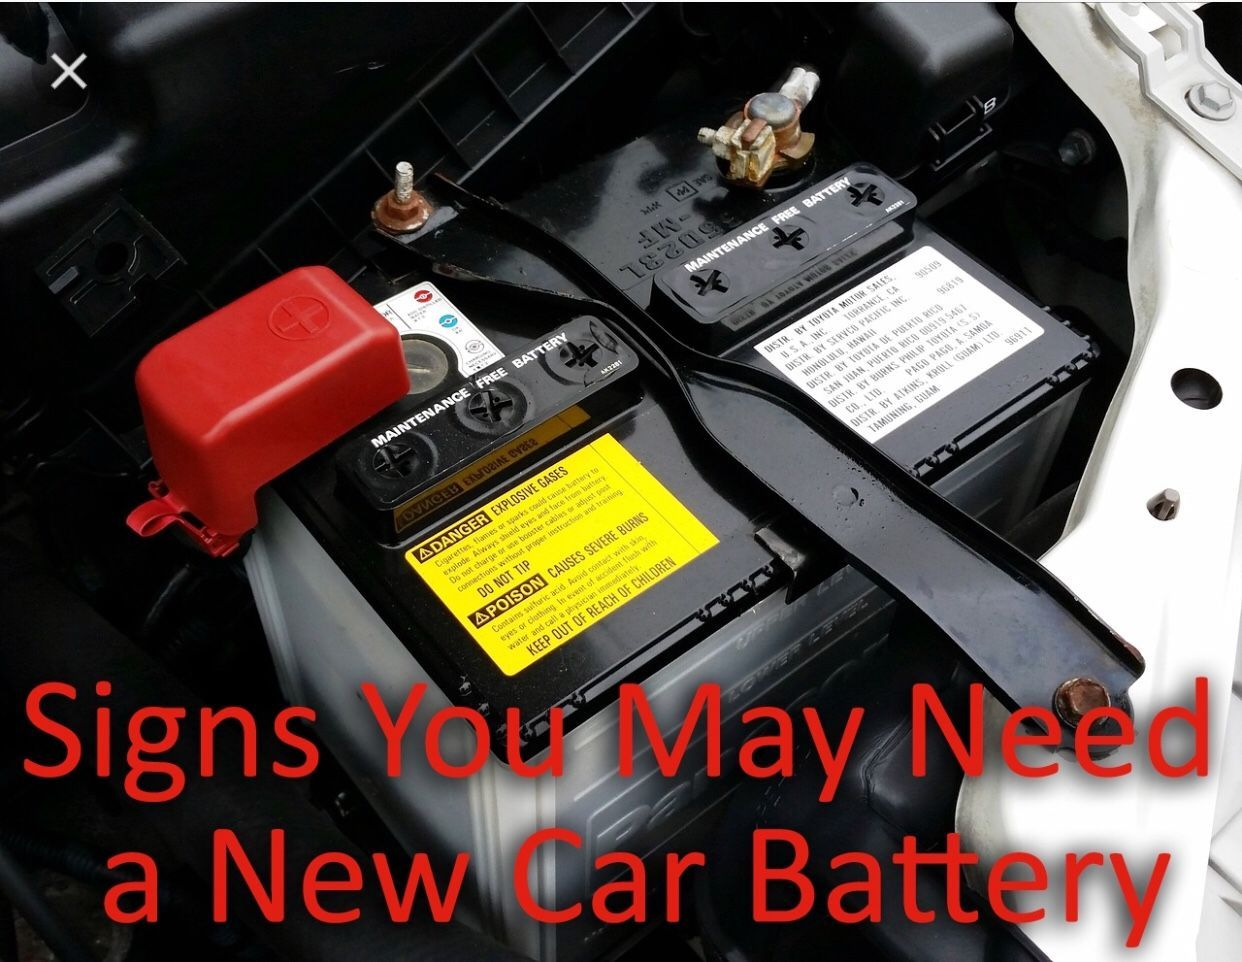 Free Car Battery Installation For The Month Of January If You Buy A